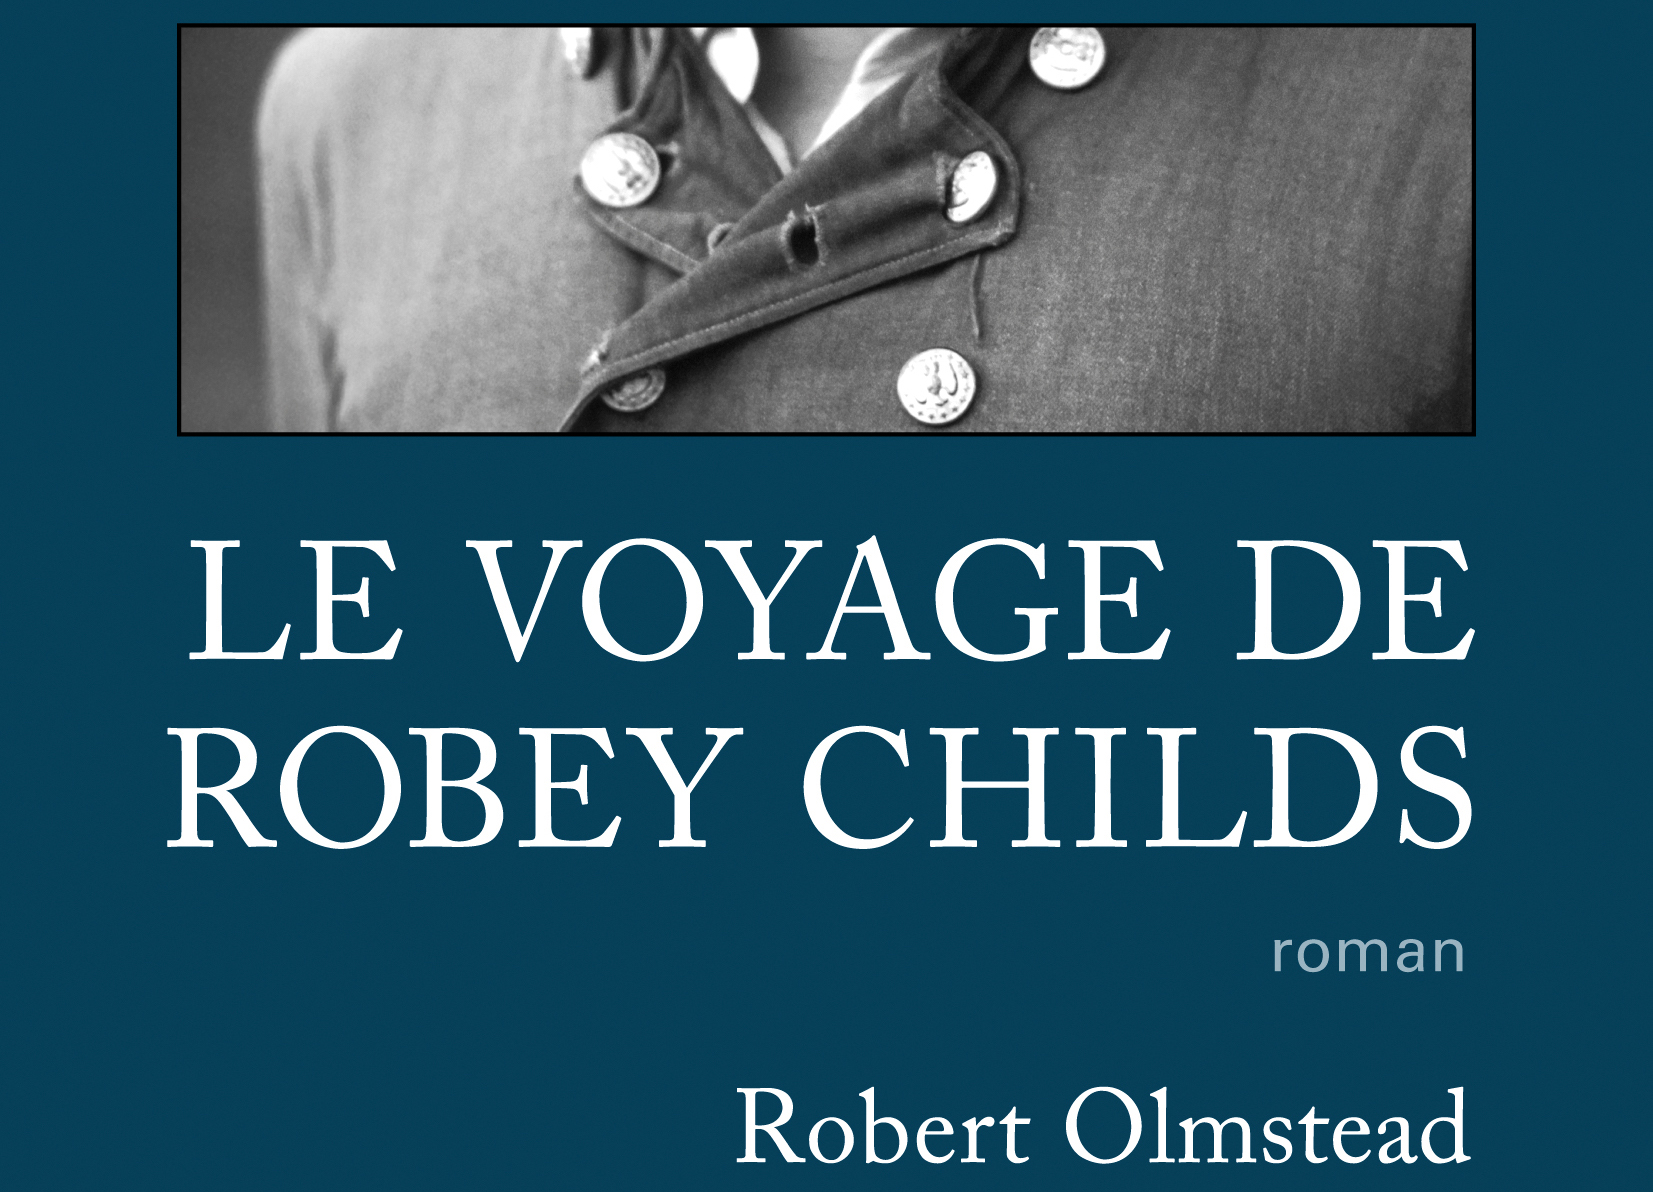 Robey Childs